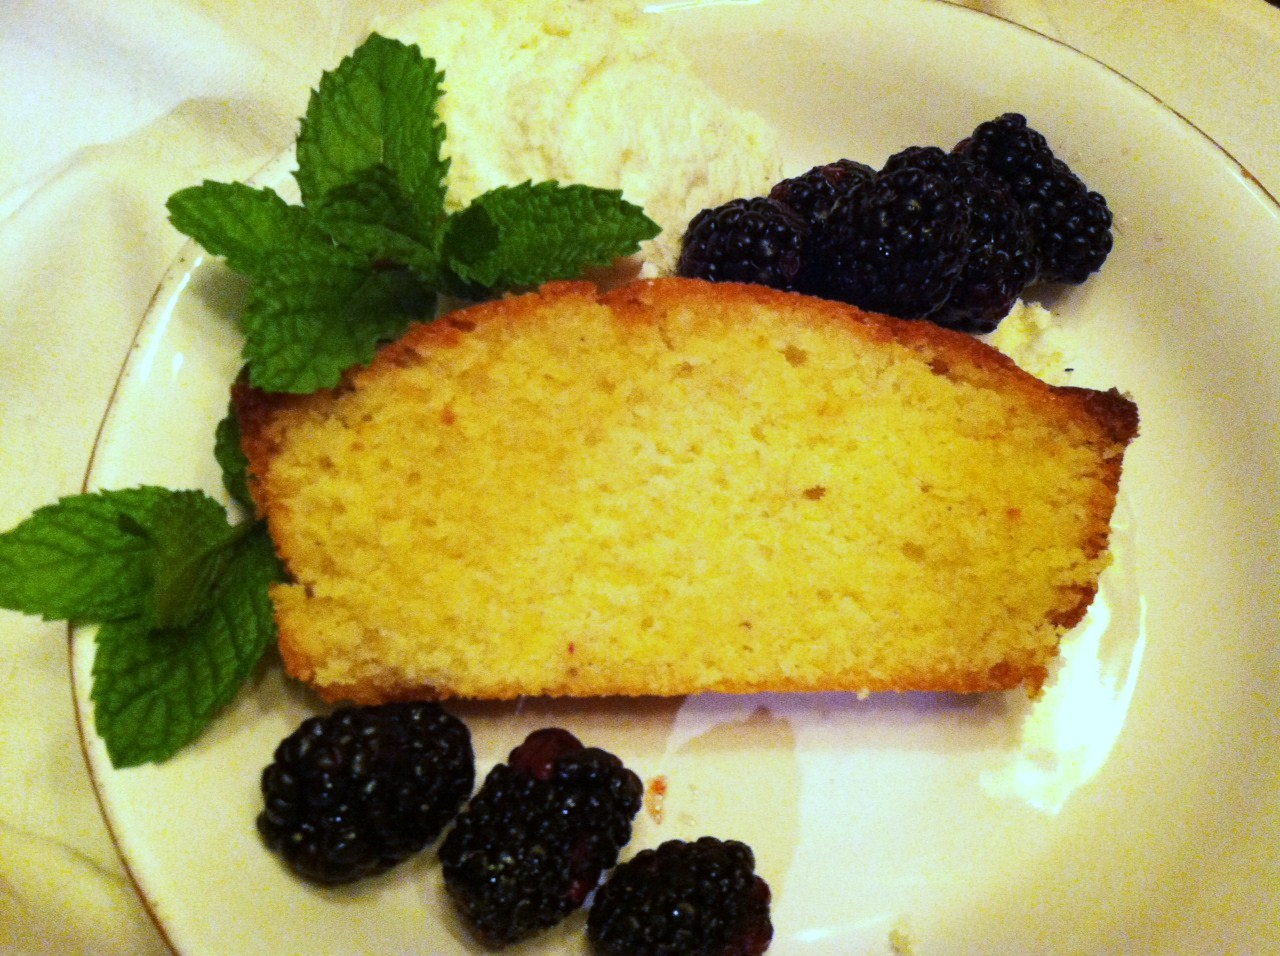 Rum Glazed Pound Cake with Fresh Berries